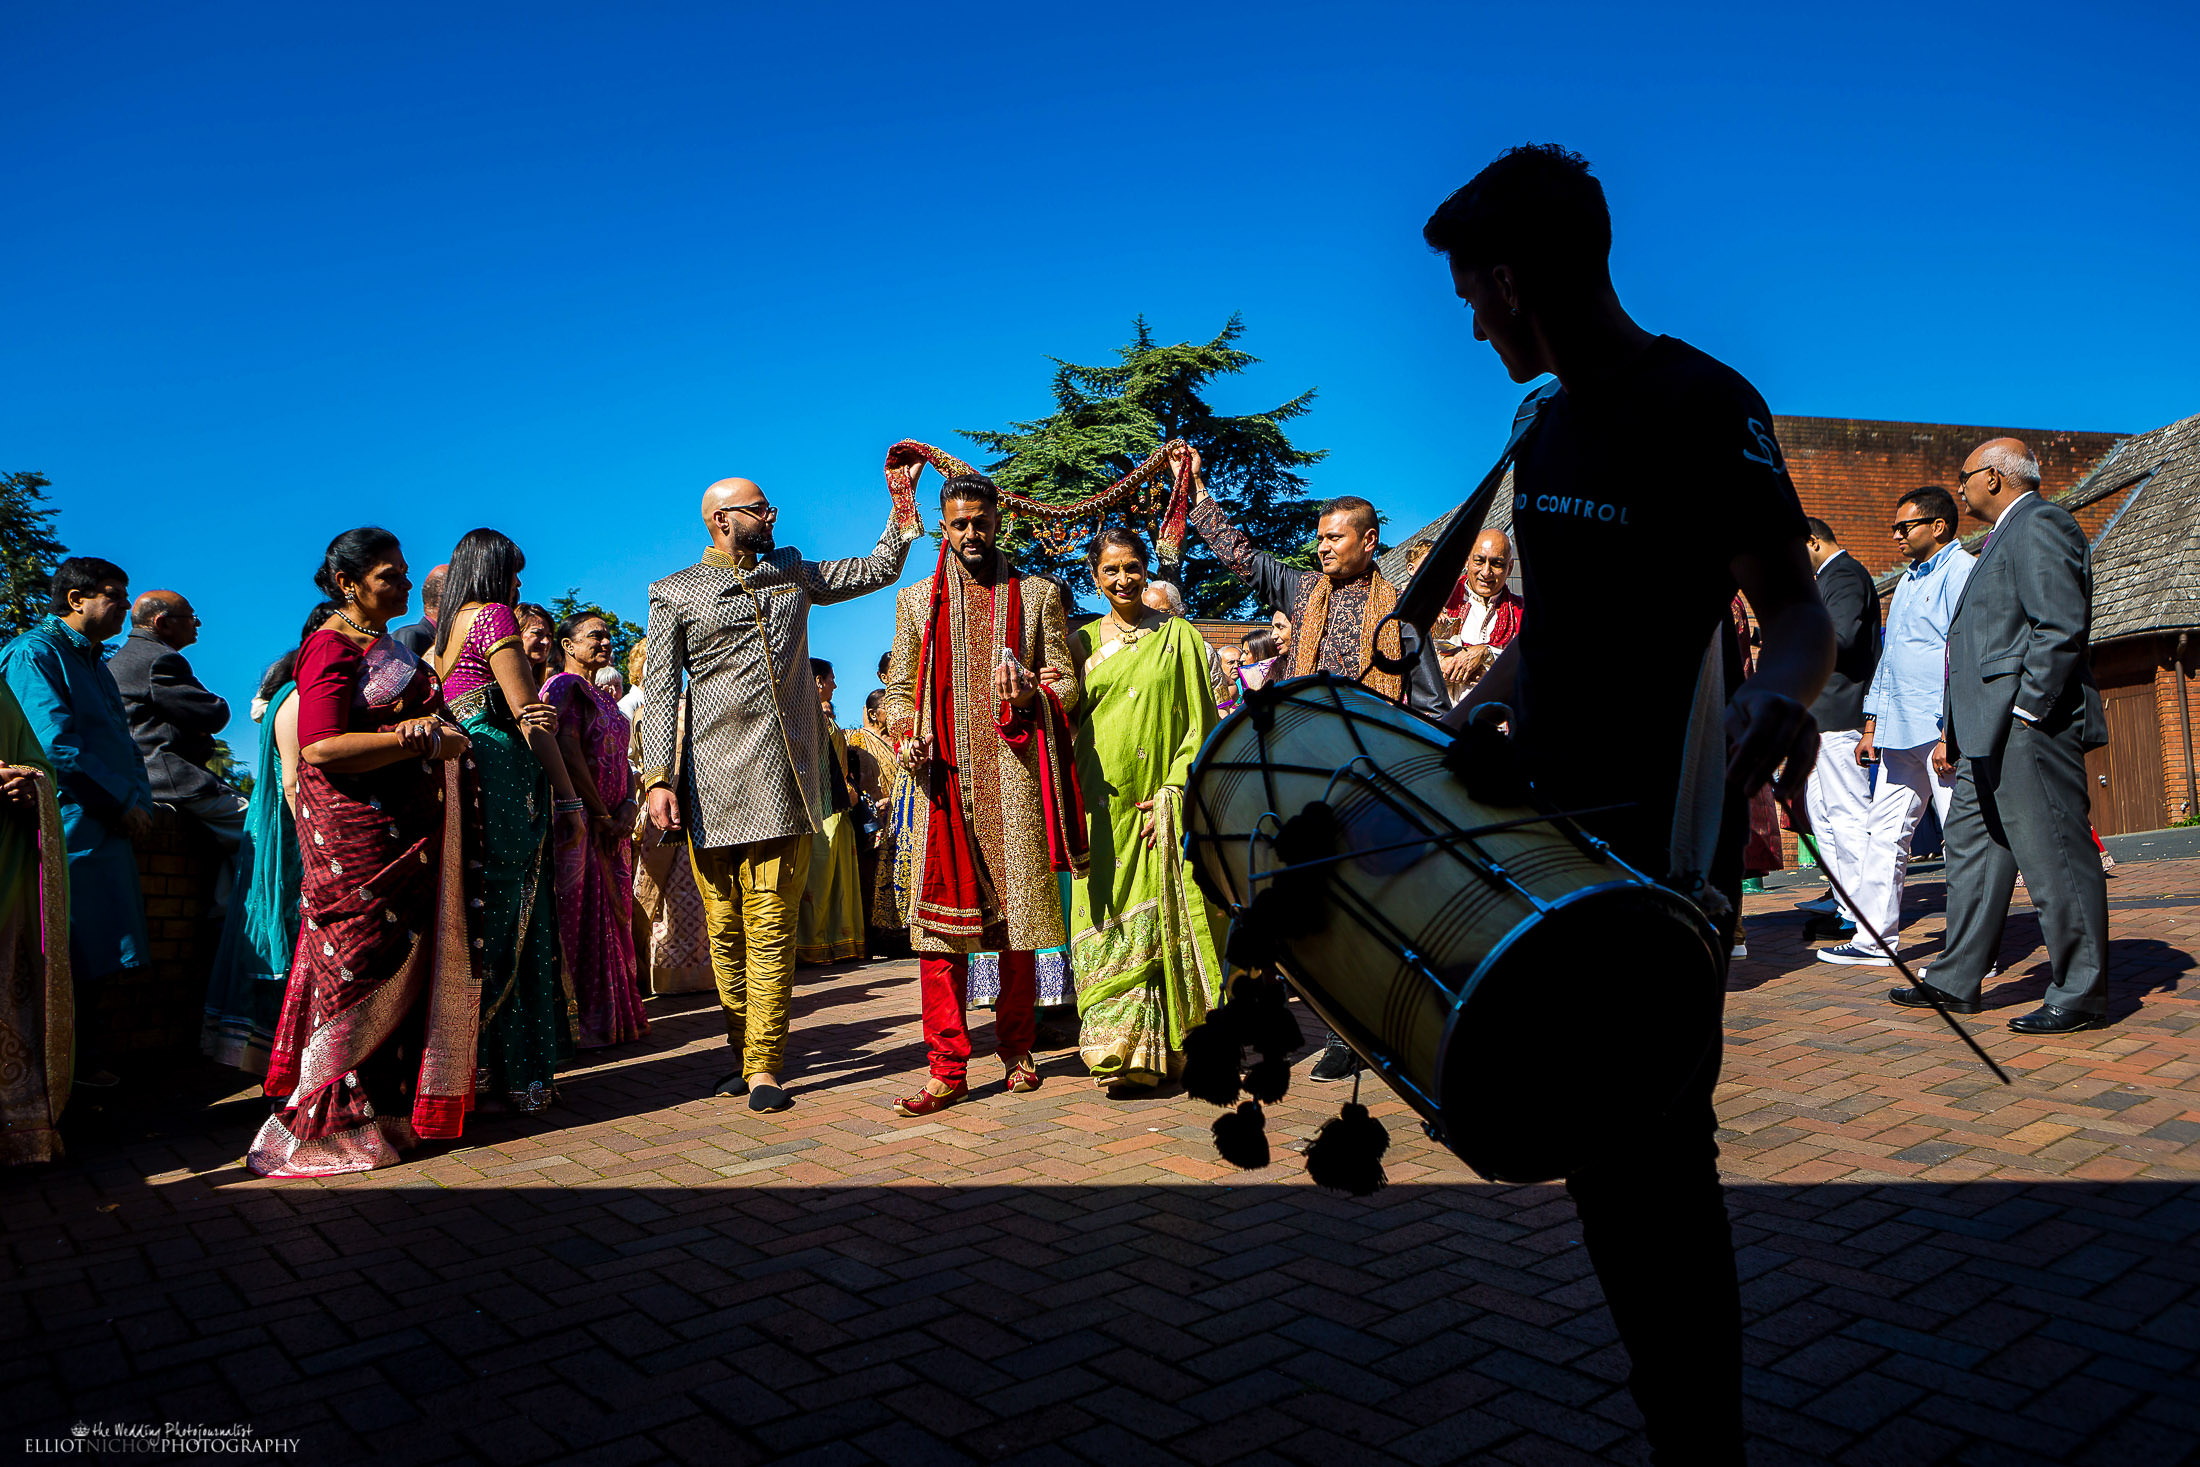 Indian groom walks towards the Hindu wedding ceremony location, surrounded by family members. Photo by Elliot Nichol Photography based in the Northeast of England.